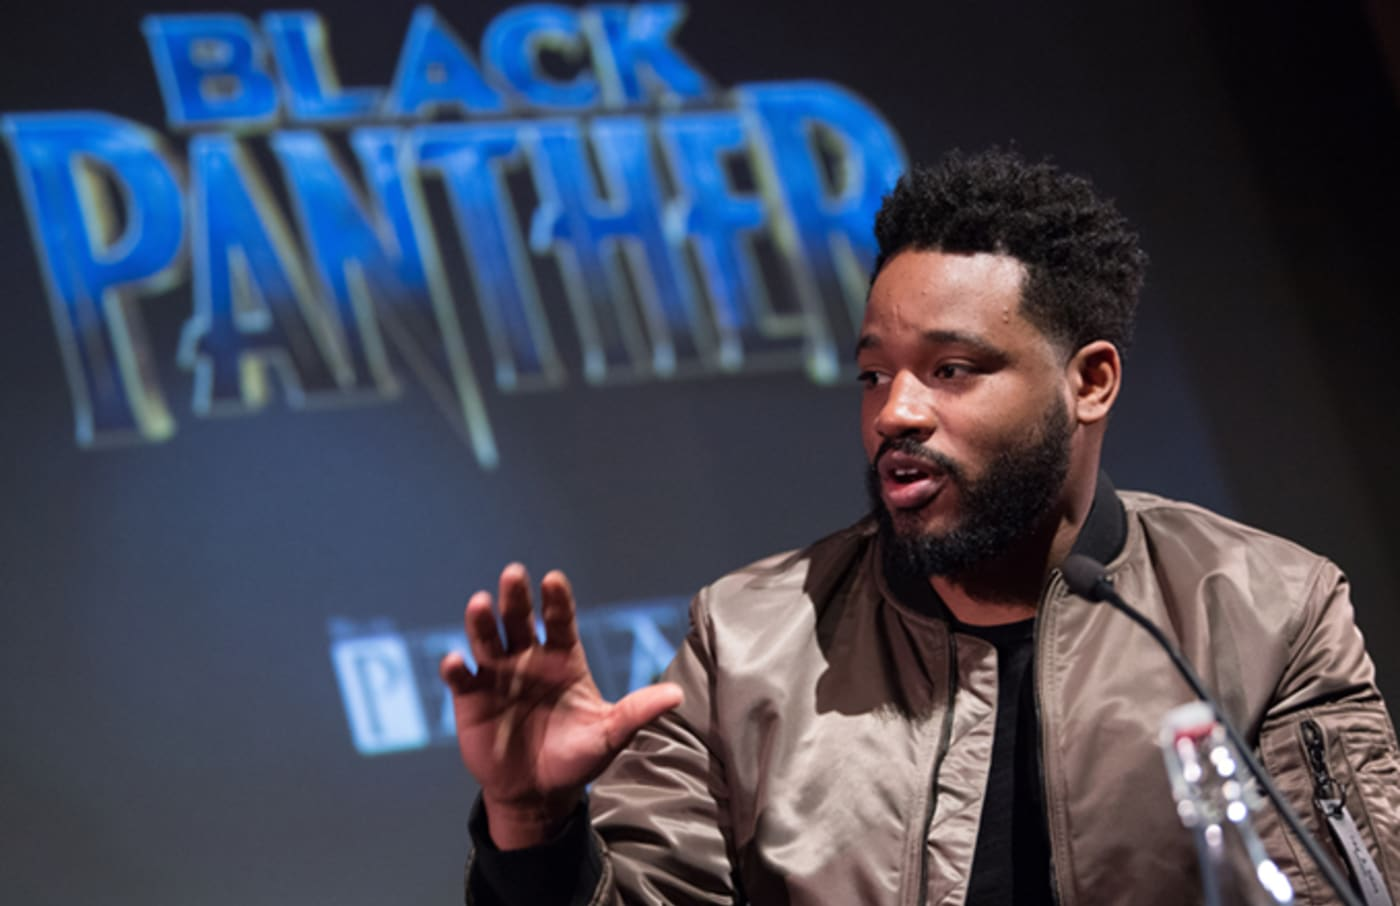 ryan coogler black panther press conference getty